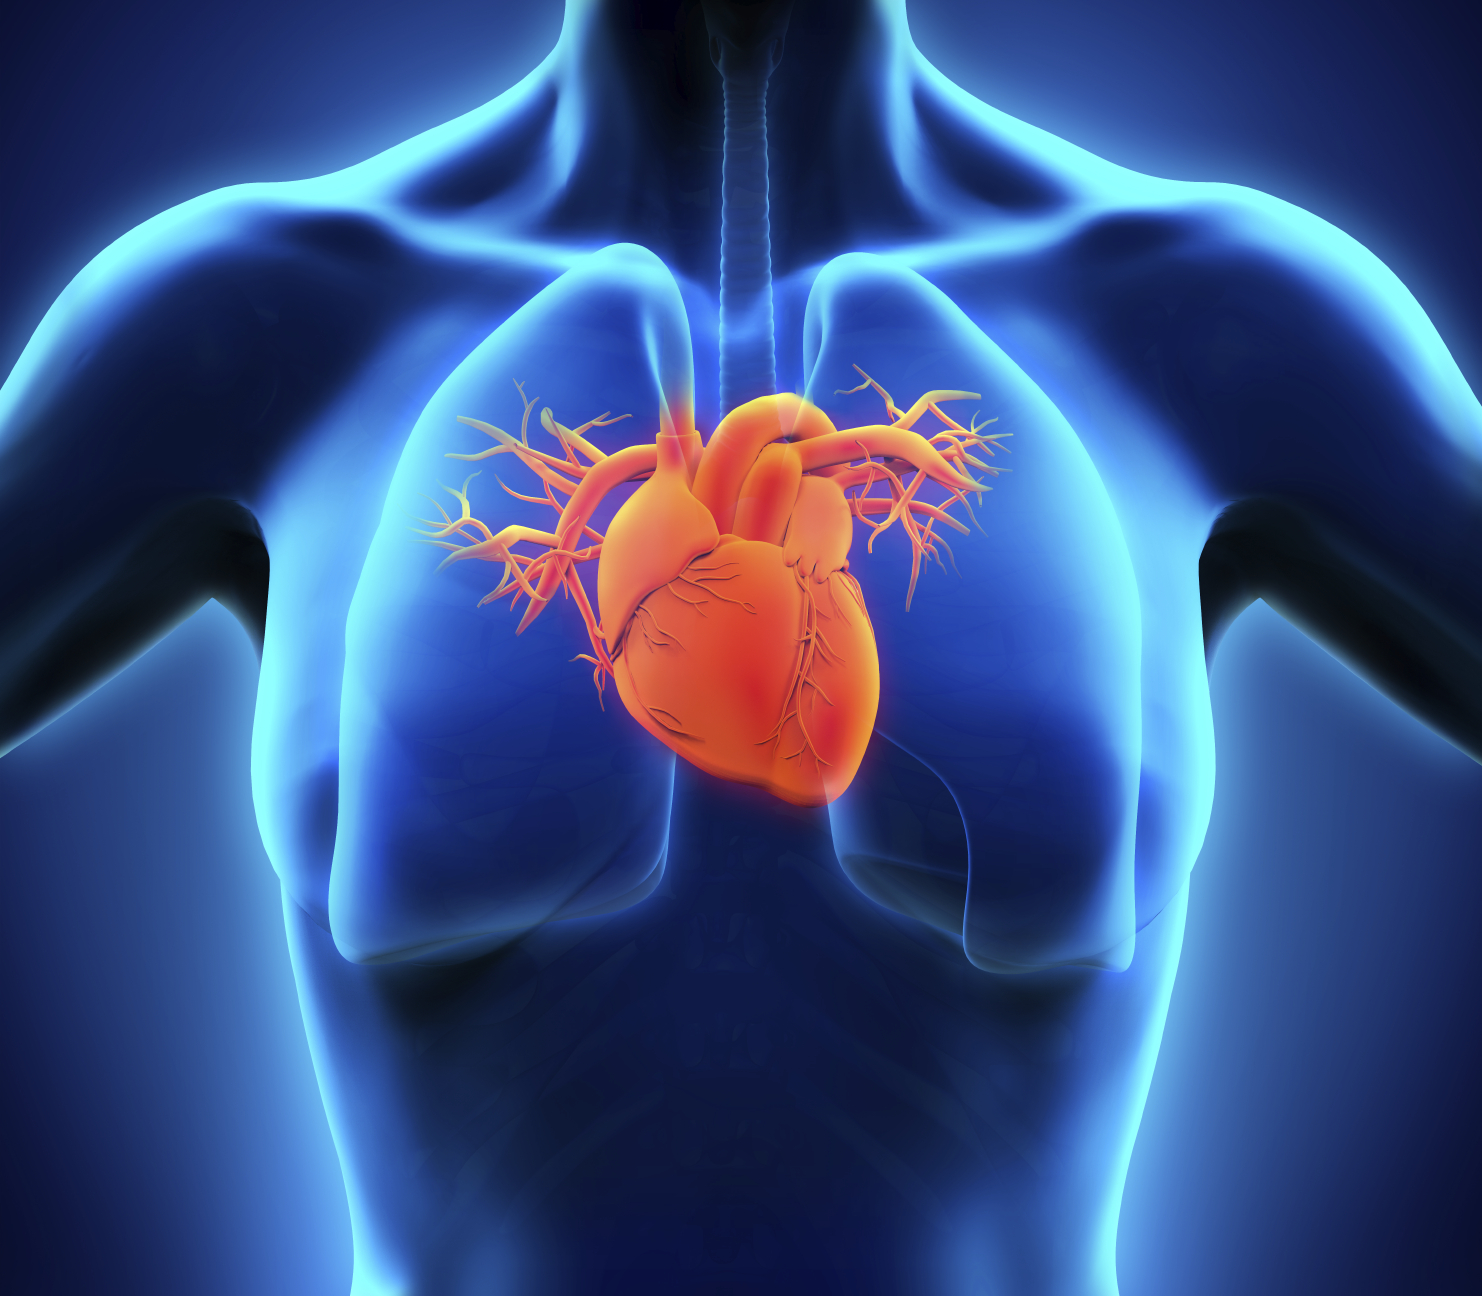 Chronic heart issues caused by diabetes